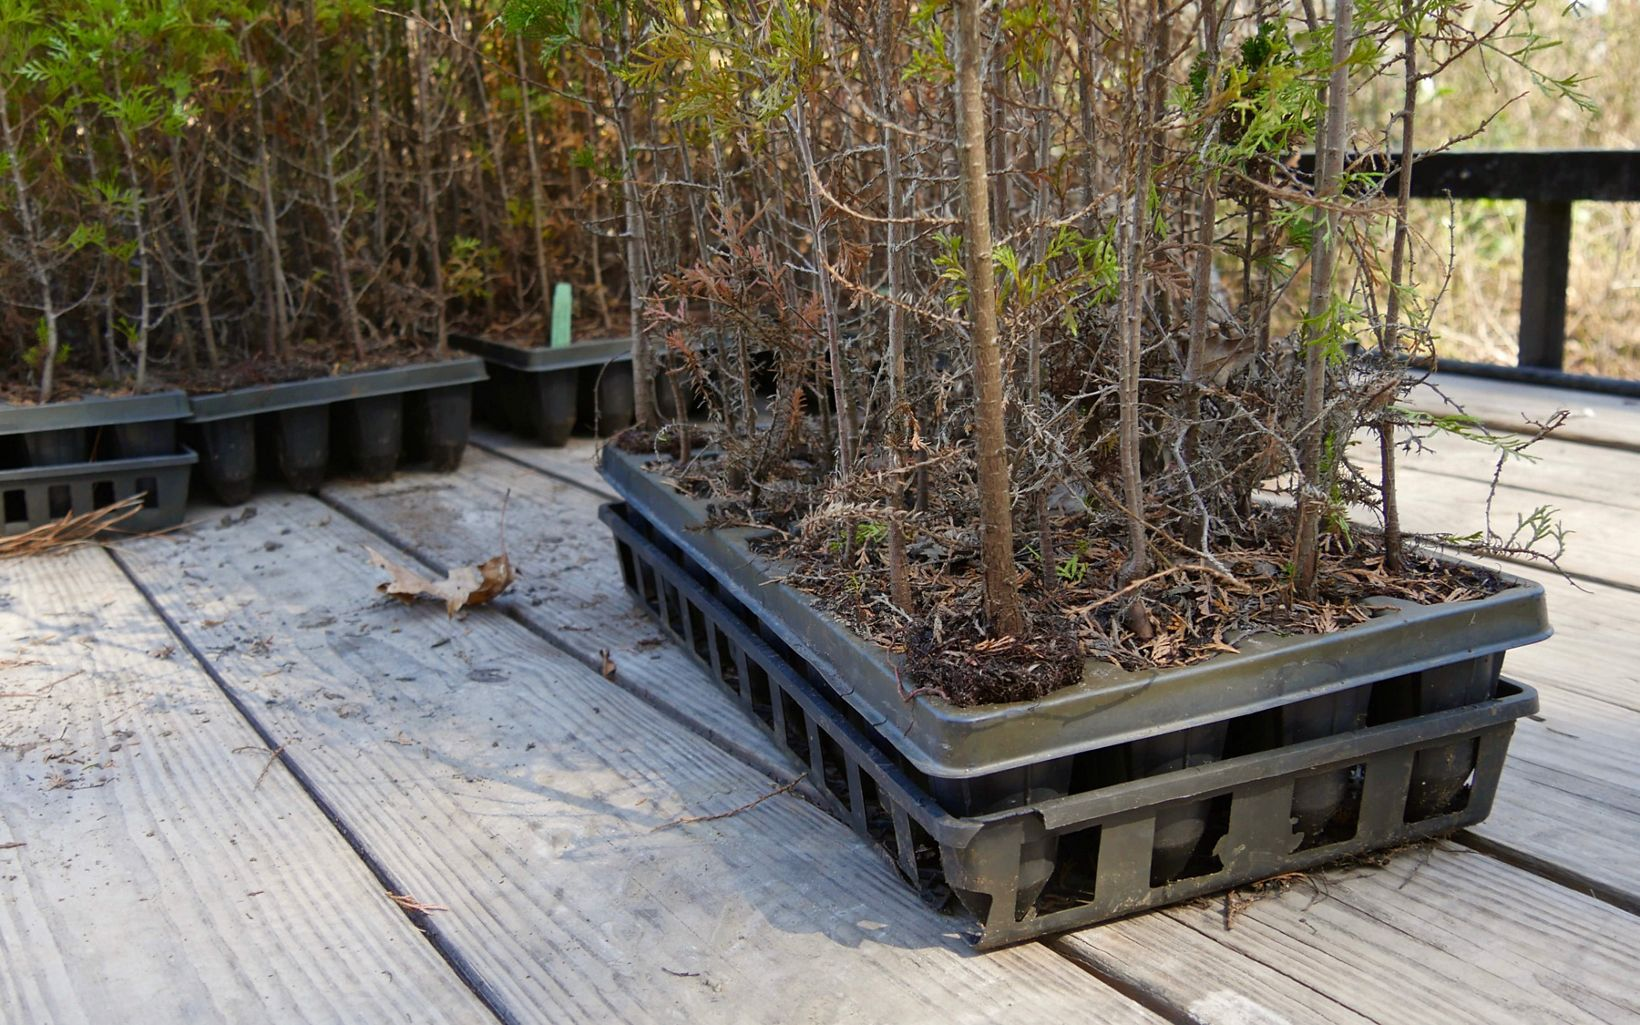 Since 2009, Worcester, Wicomico and Somerset County middle school students have planted more than 37,000 Atlantic white cedar seedlings at Nassawango Creek Preserve.